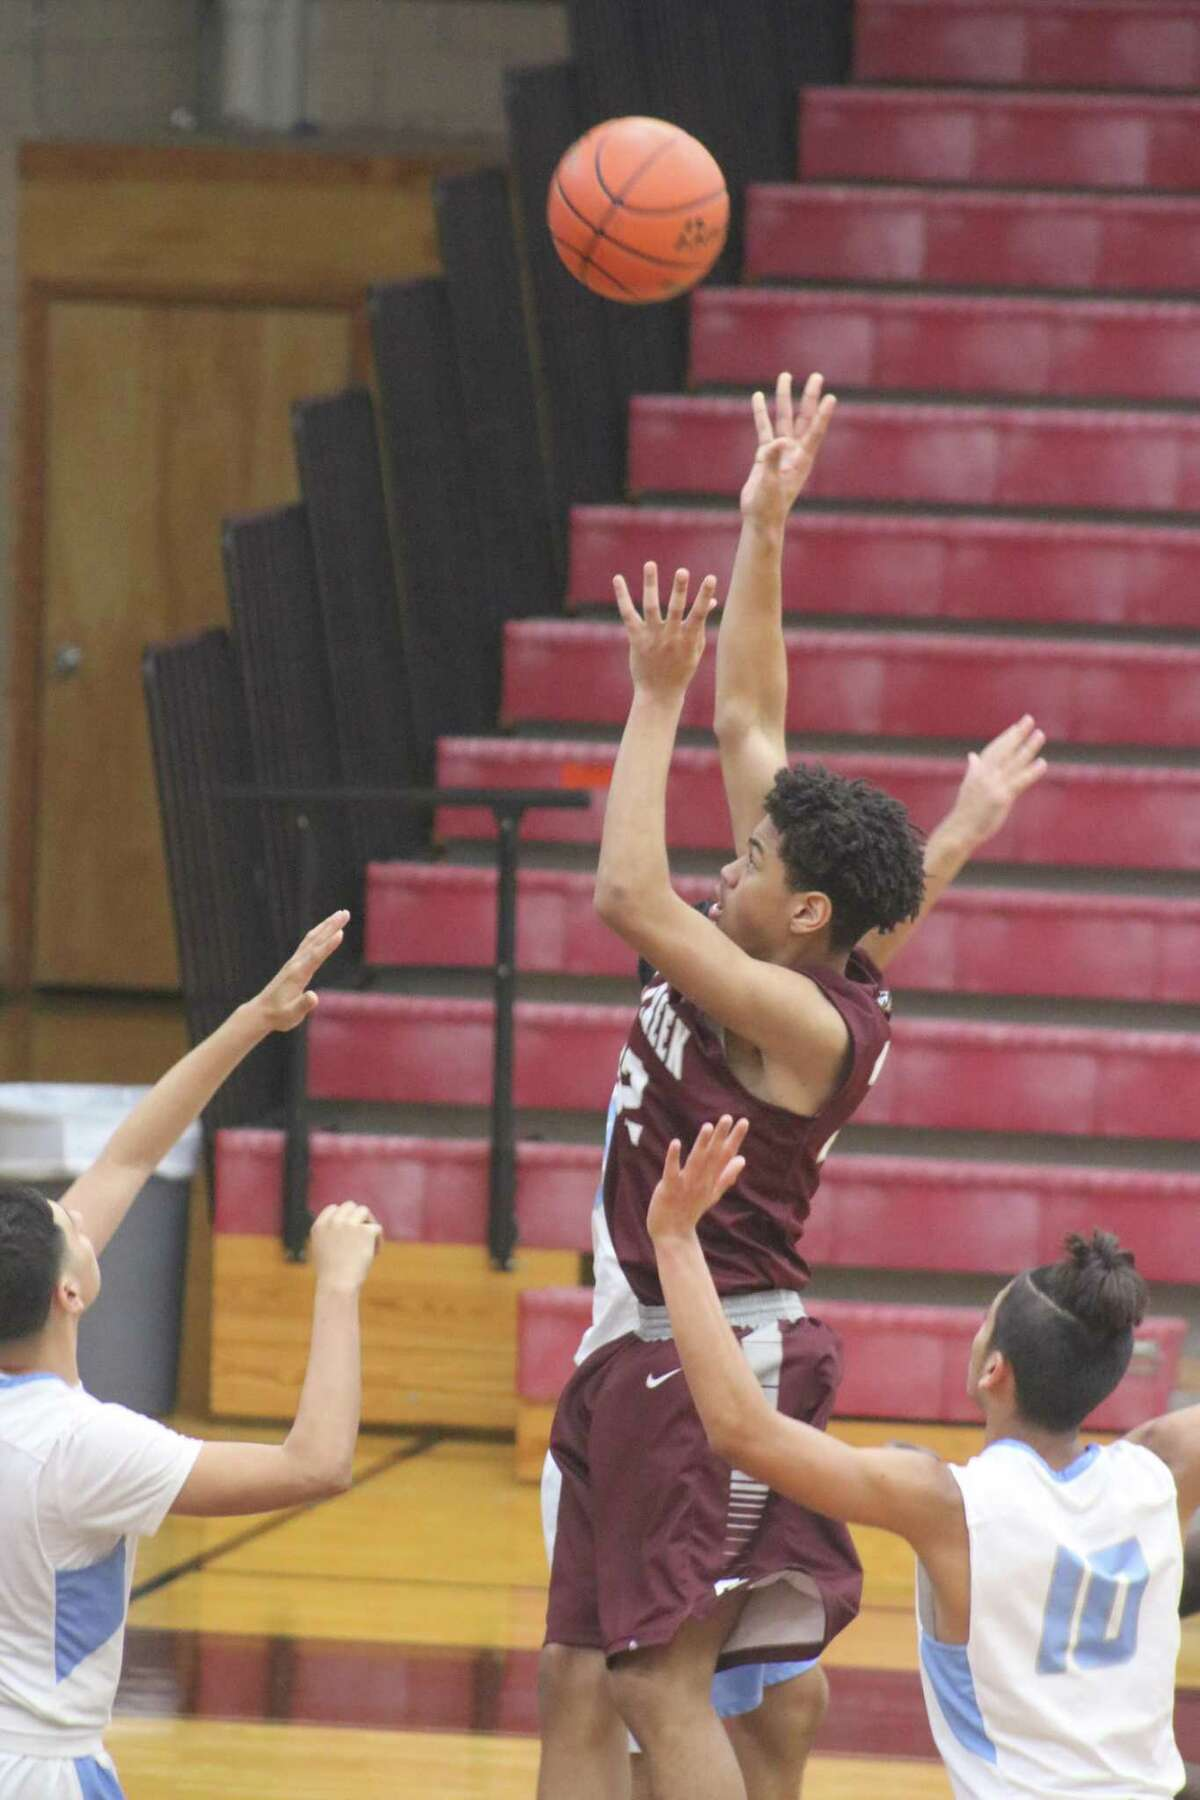 Surrounded by defenders, Clear Creek's J.P. Gonzalez goes up for a shot in the Sam Rayburn game during the Deer park Thanksgiving Tournament this weekend.